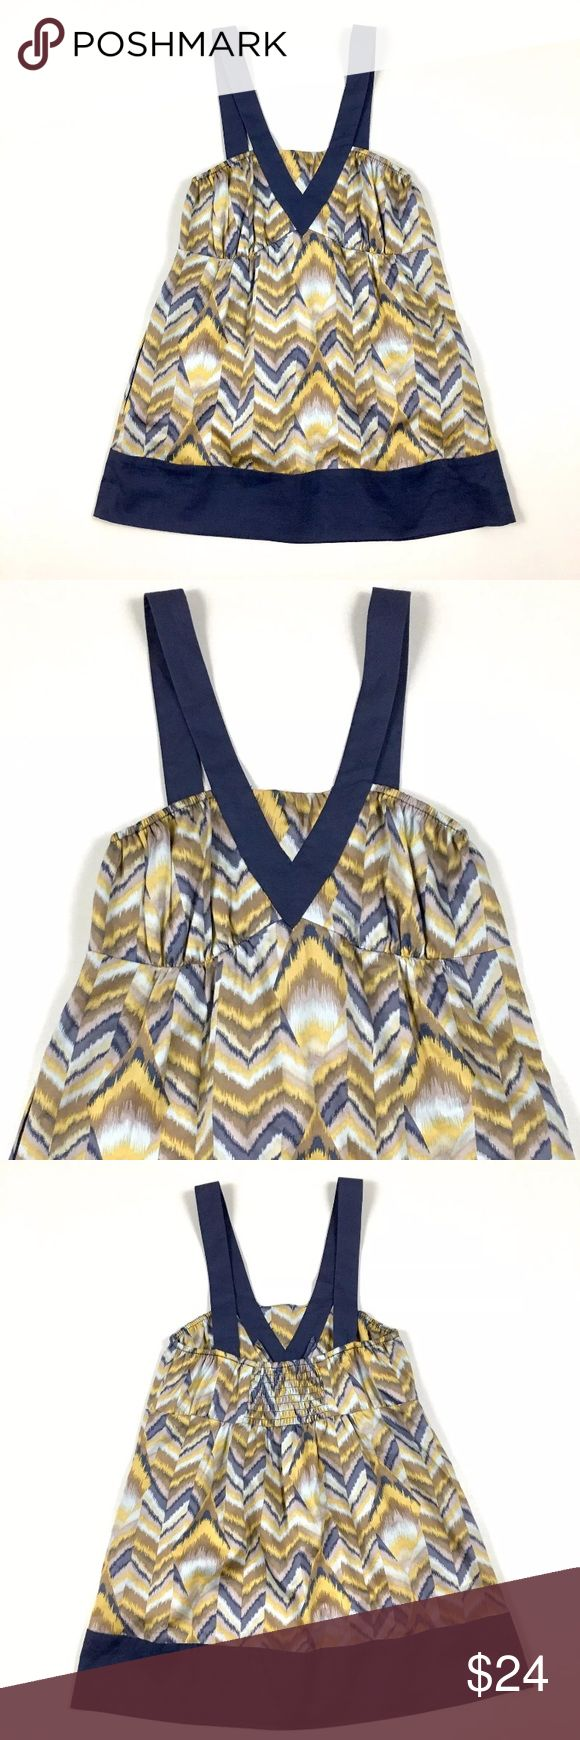 BCBGeneration Blue & Yellow Tank Size:  XS Color:  Yellow, Blue, Tan and White Material:  100% Cotton Details:  Smocked Back, Side Seam Pockets Care:  Machine Wash Condition:  No Rips or Stains All measurements are in inches and taken with garment laying flat.  Not doubled.  Bust:  12 Waist:  14 1/2 Hem:  20 Shoulder to Hem:  25 1/2  Item:  5260417388 BCBGeneration Tops